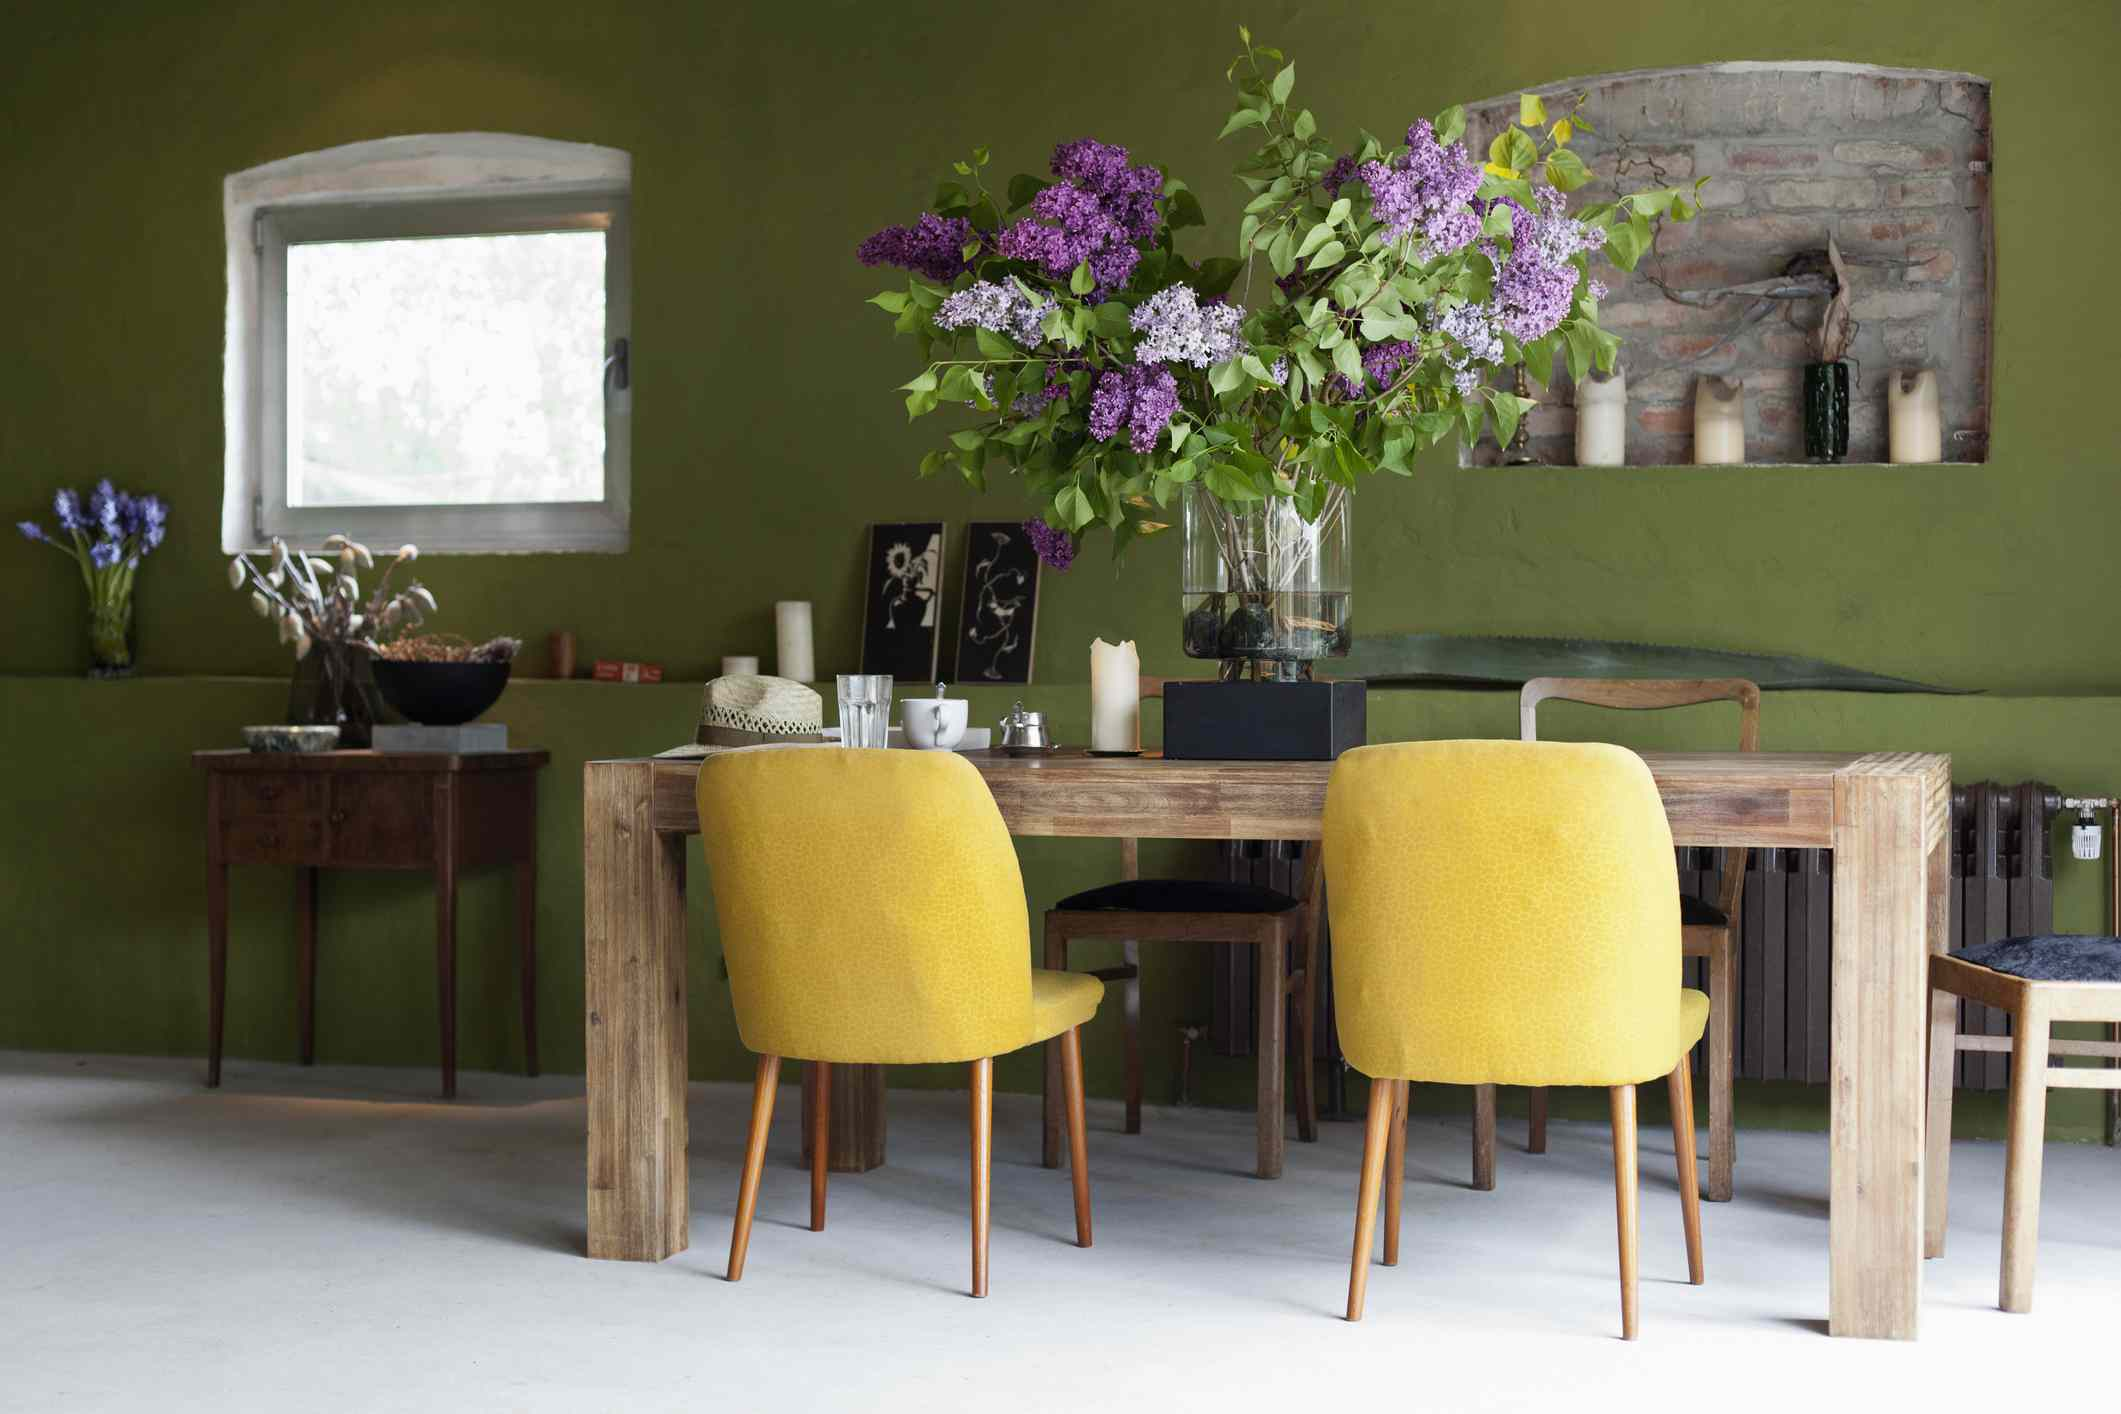 Yellow chairs in green dining room